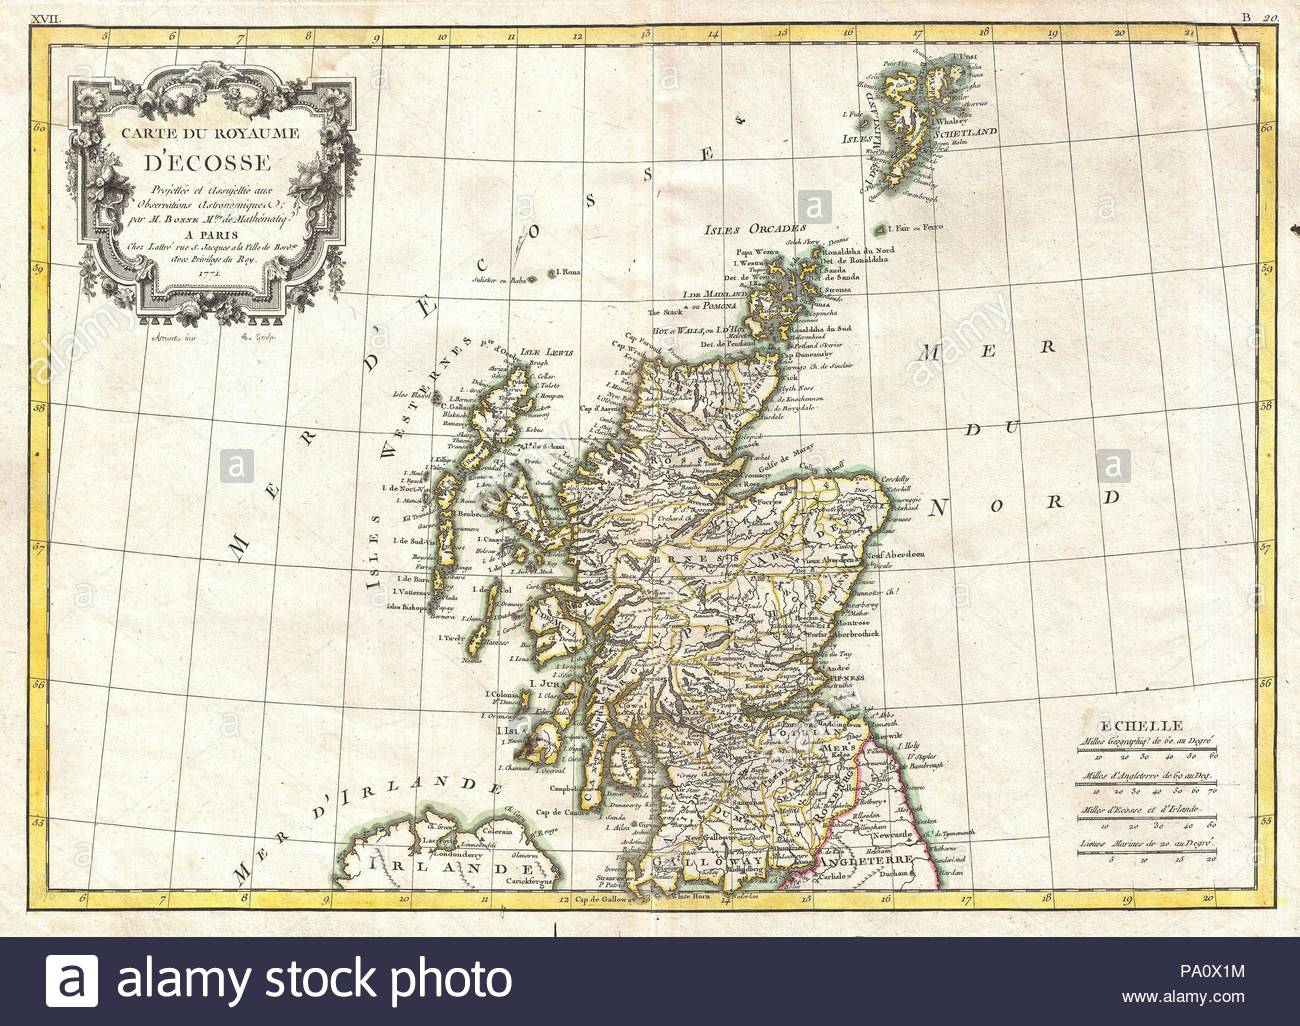 1772, Bonne Map of Scotland, Rigobert Bonne 1727 – 1794, one of the most important cartographers of the late 18th century. - Stock Image